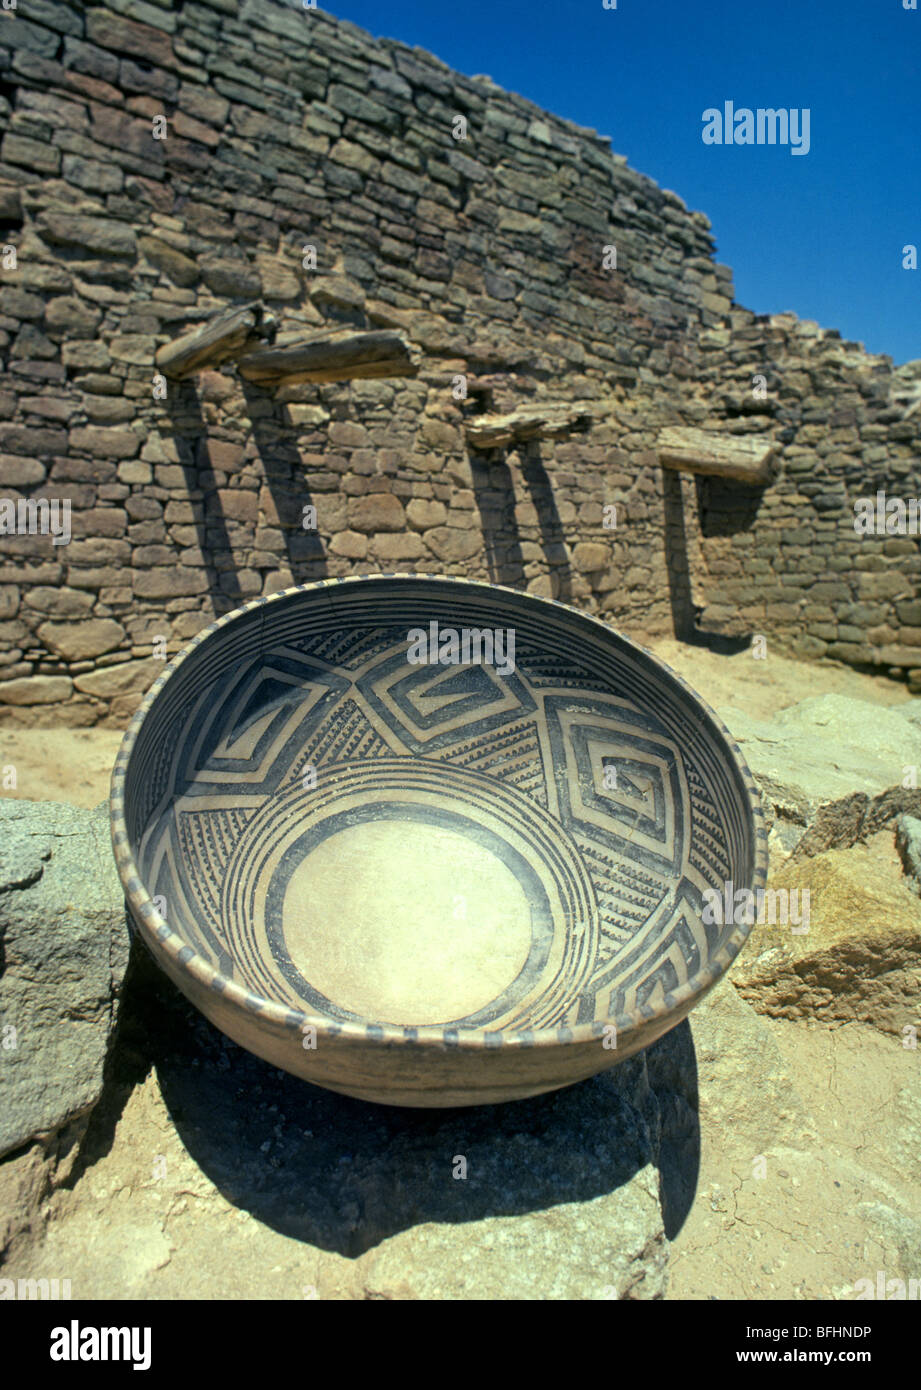 One thousand year old Anasazi pottery bowl in the 4-corners area of the American southwest - Stock Image